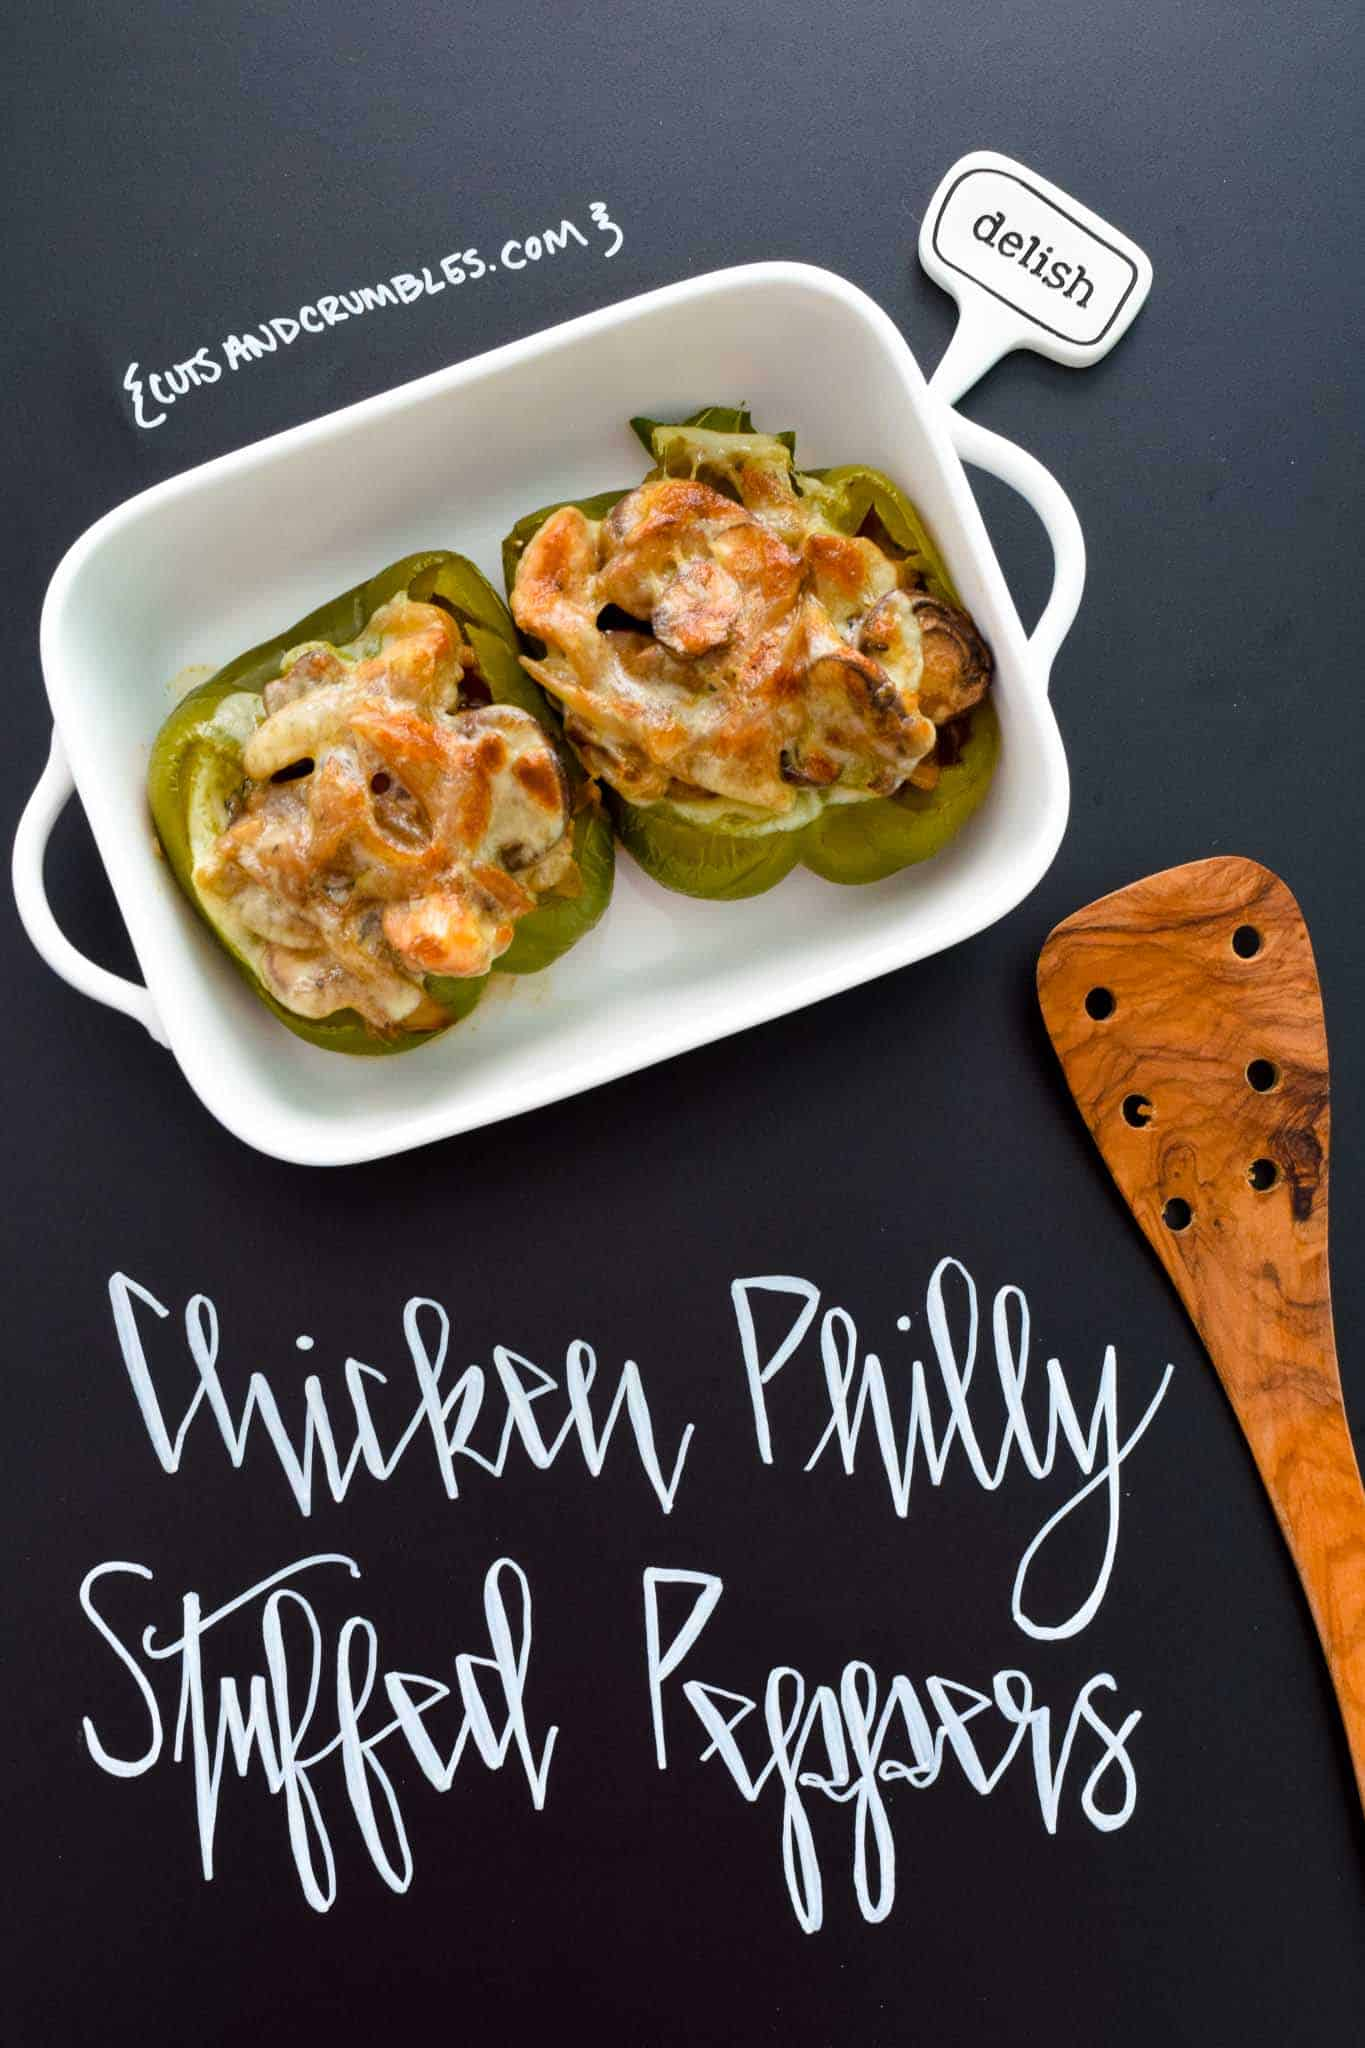 Chicken Philly Stuffed Peppers with title written on chalkboard